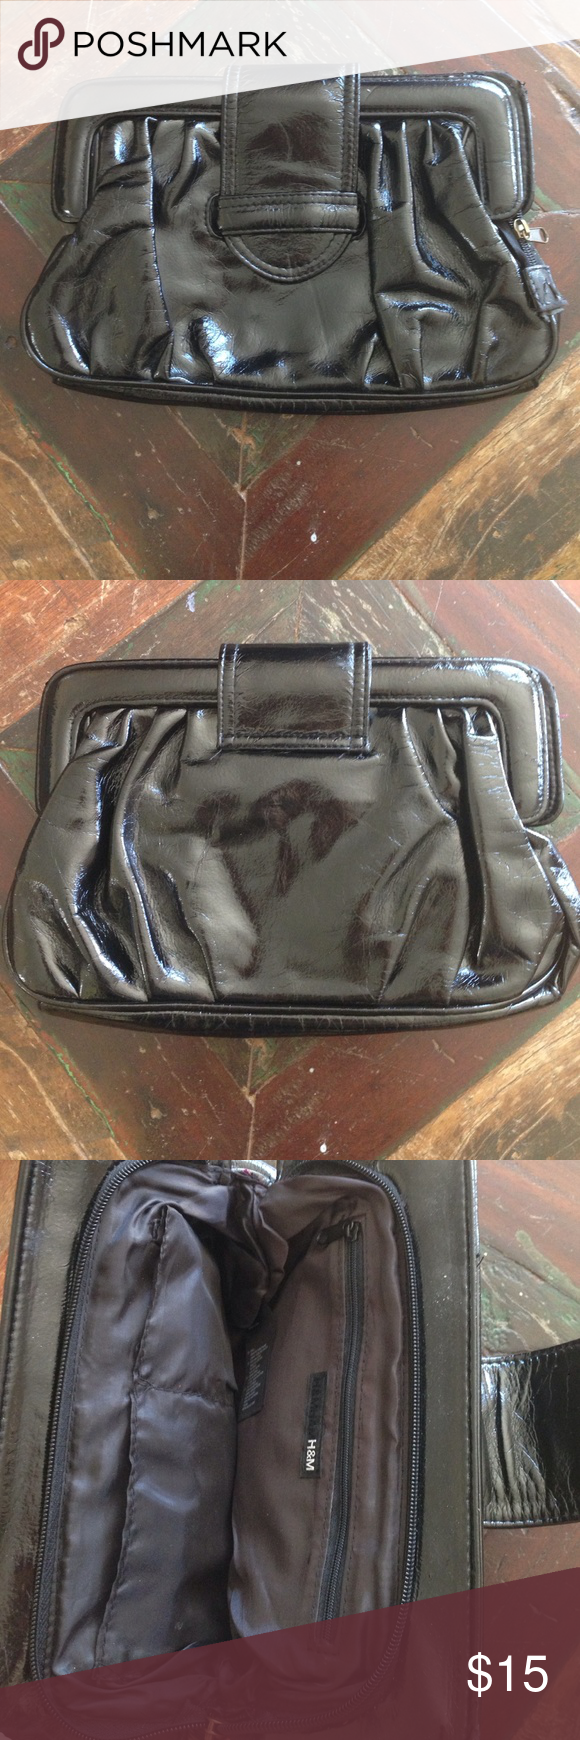 "H&M Black Clutch H&M black clutch, 12"" x 7.5"". Beautiful condition (minor wear). H&M Bags Clutches & Wristlets"